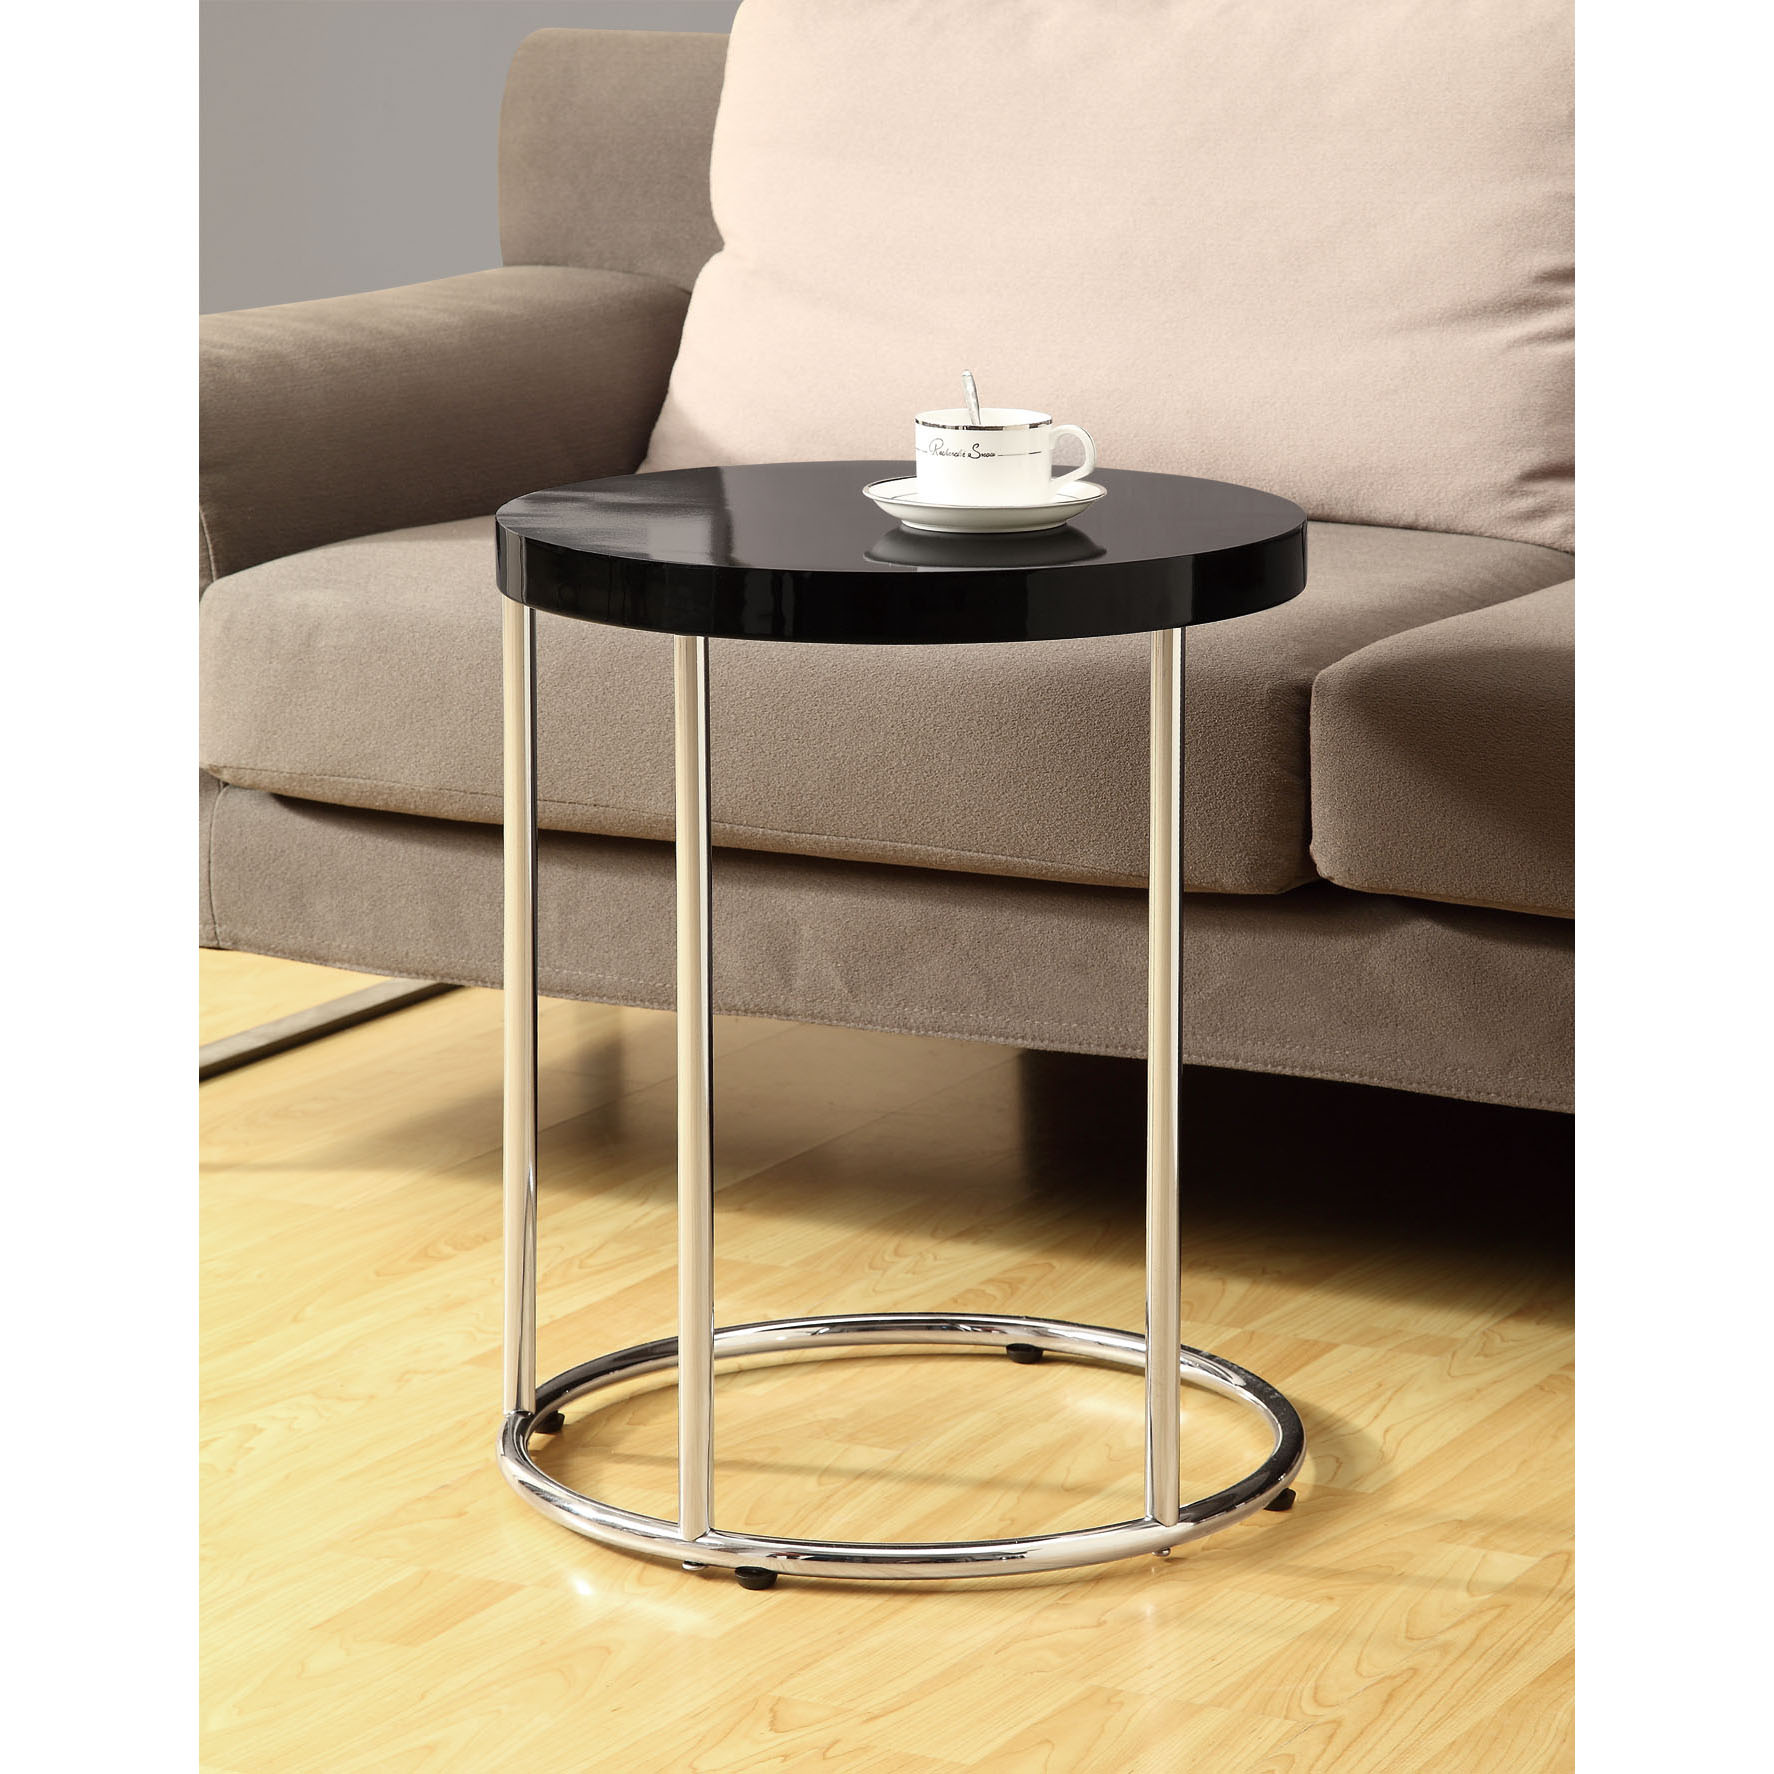 decor metal accent table with diy dandelion elegant glossy black chrome free shipping today wrought iron end tables treasure chest furniture white resin wicker side small cube